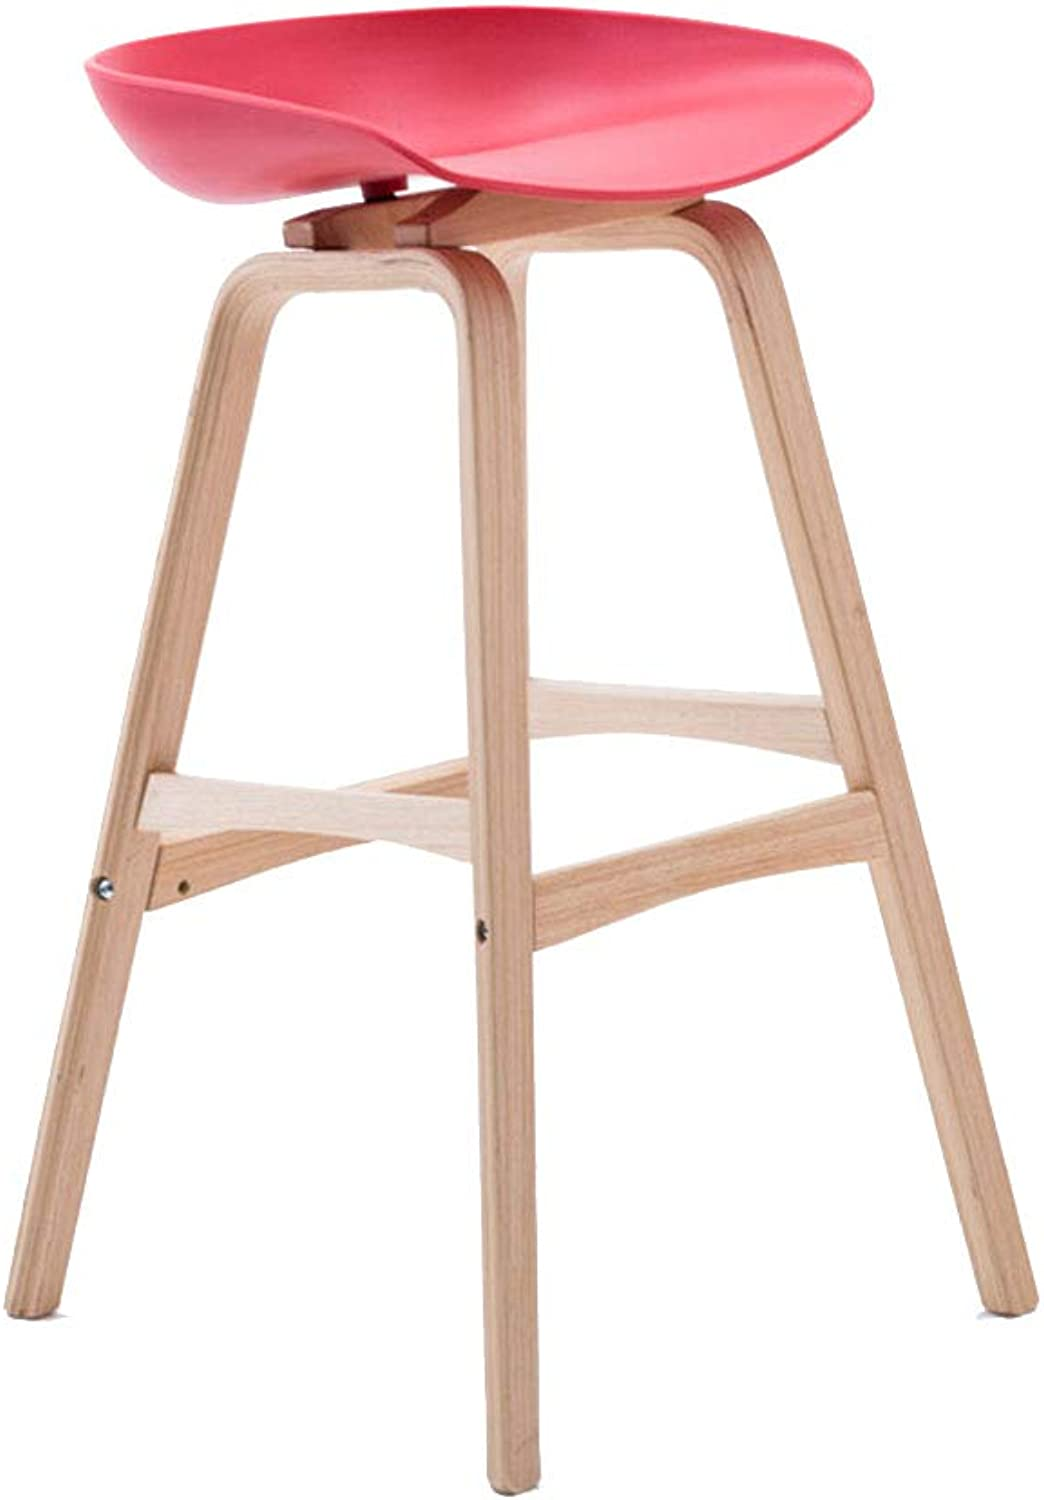 Barstools Bar stools Bar stools Wood Bar stools for Kitchens Suitable for Kitchen Family Breakfast Home Cafe Bar Office mall Counter Counter Height Swivel Seat (color   E, Size   65CM)